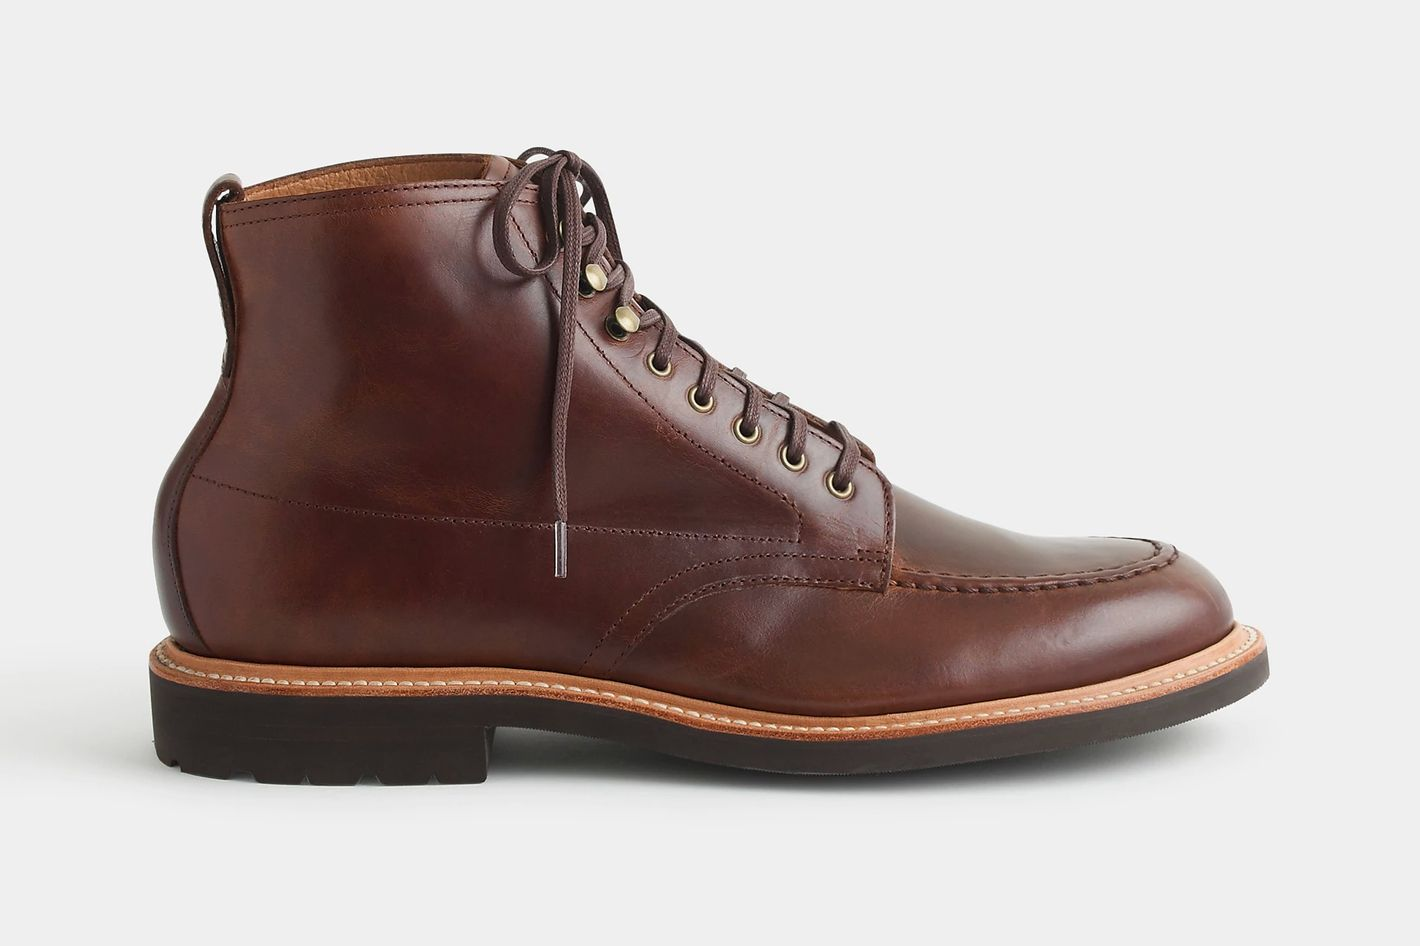 Kenton leather boots